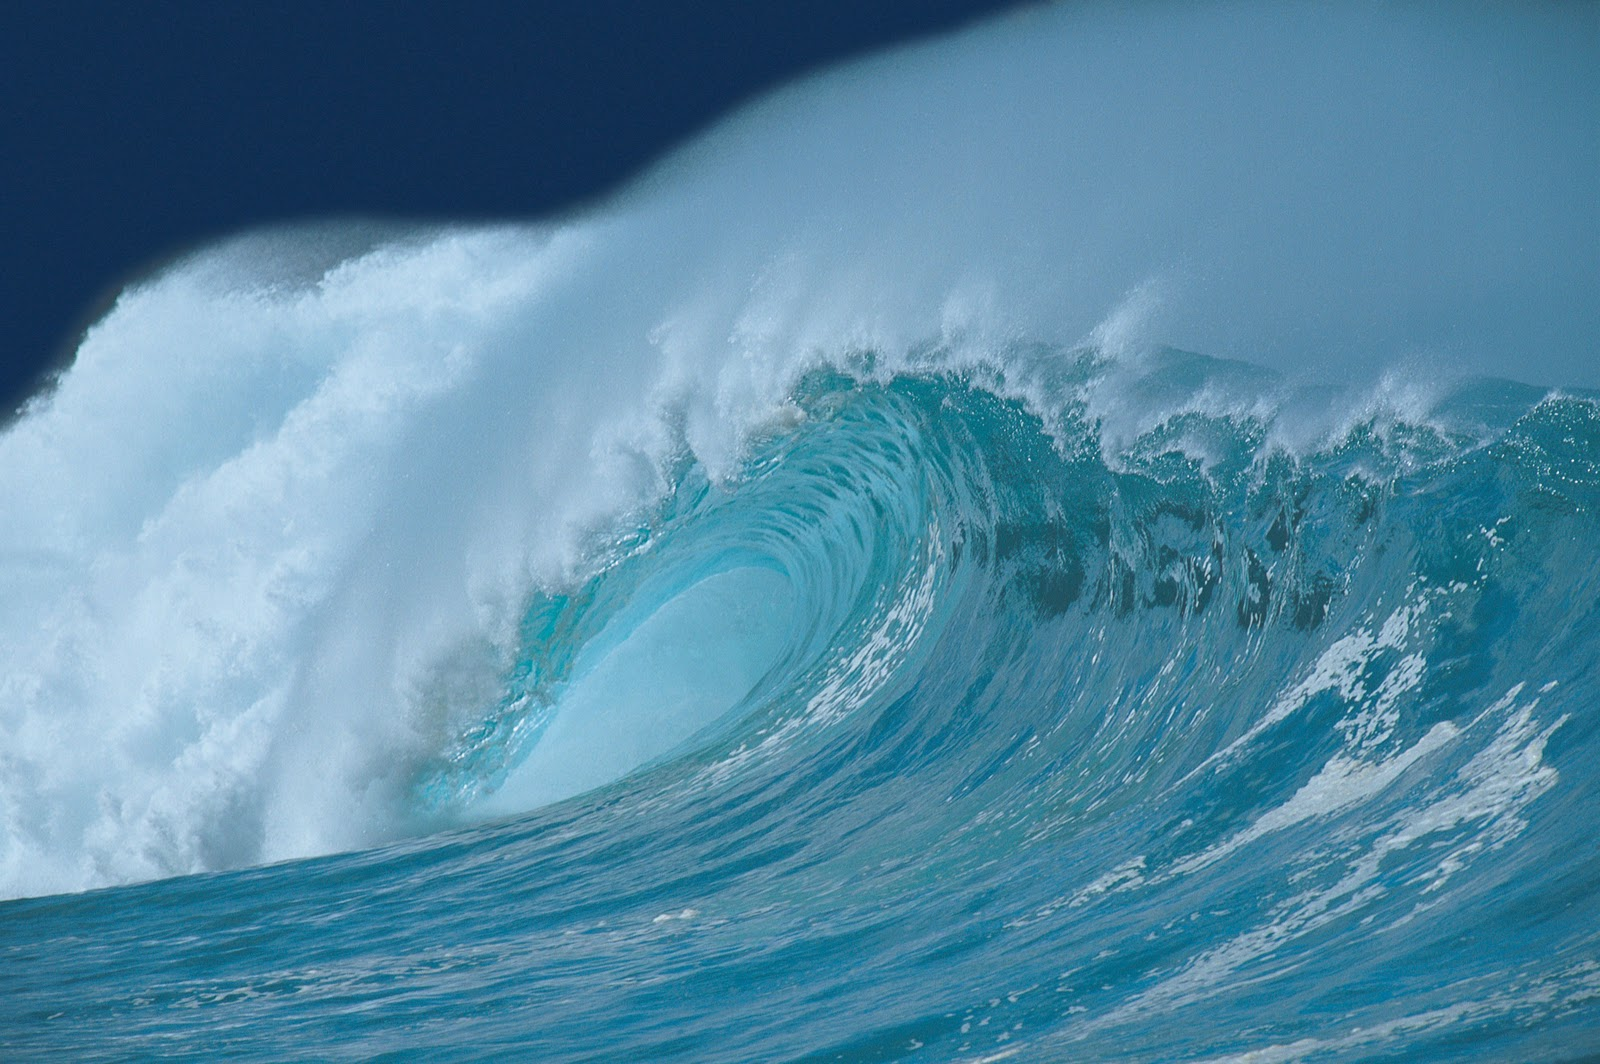 photo wallpaper powerful ocean waves my image